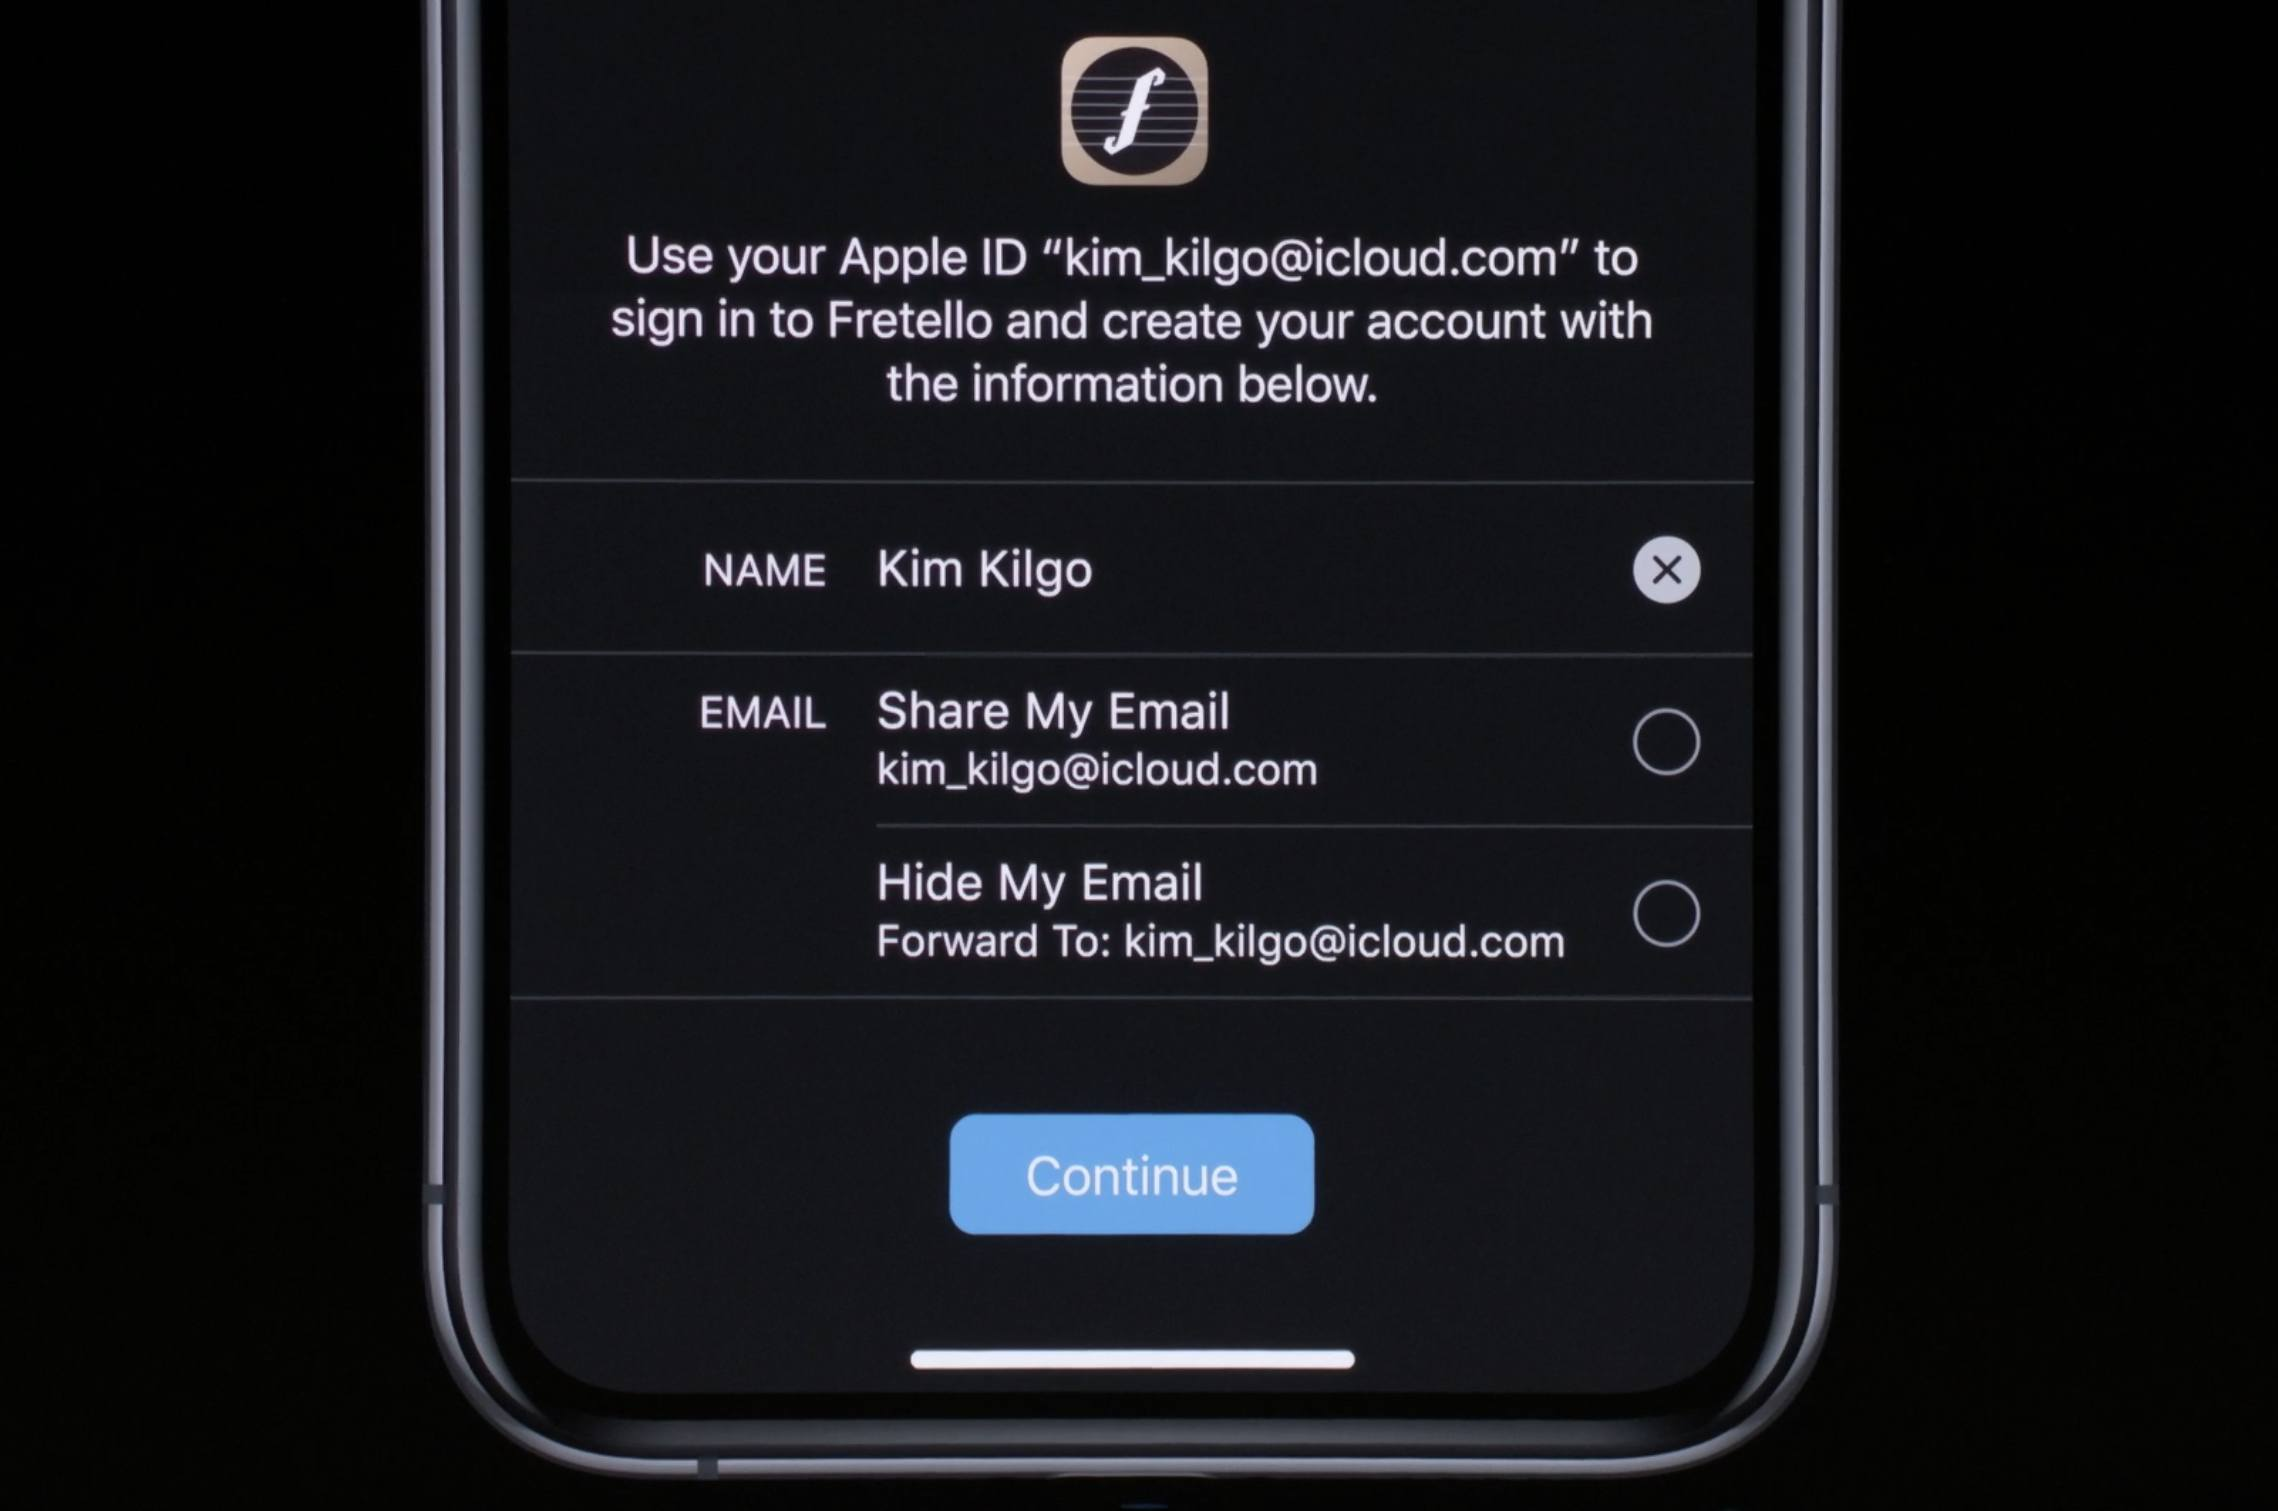 Email sharing options for Sign In with Apple.